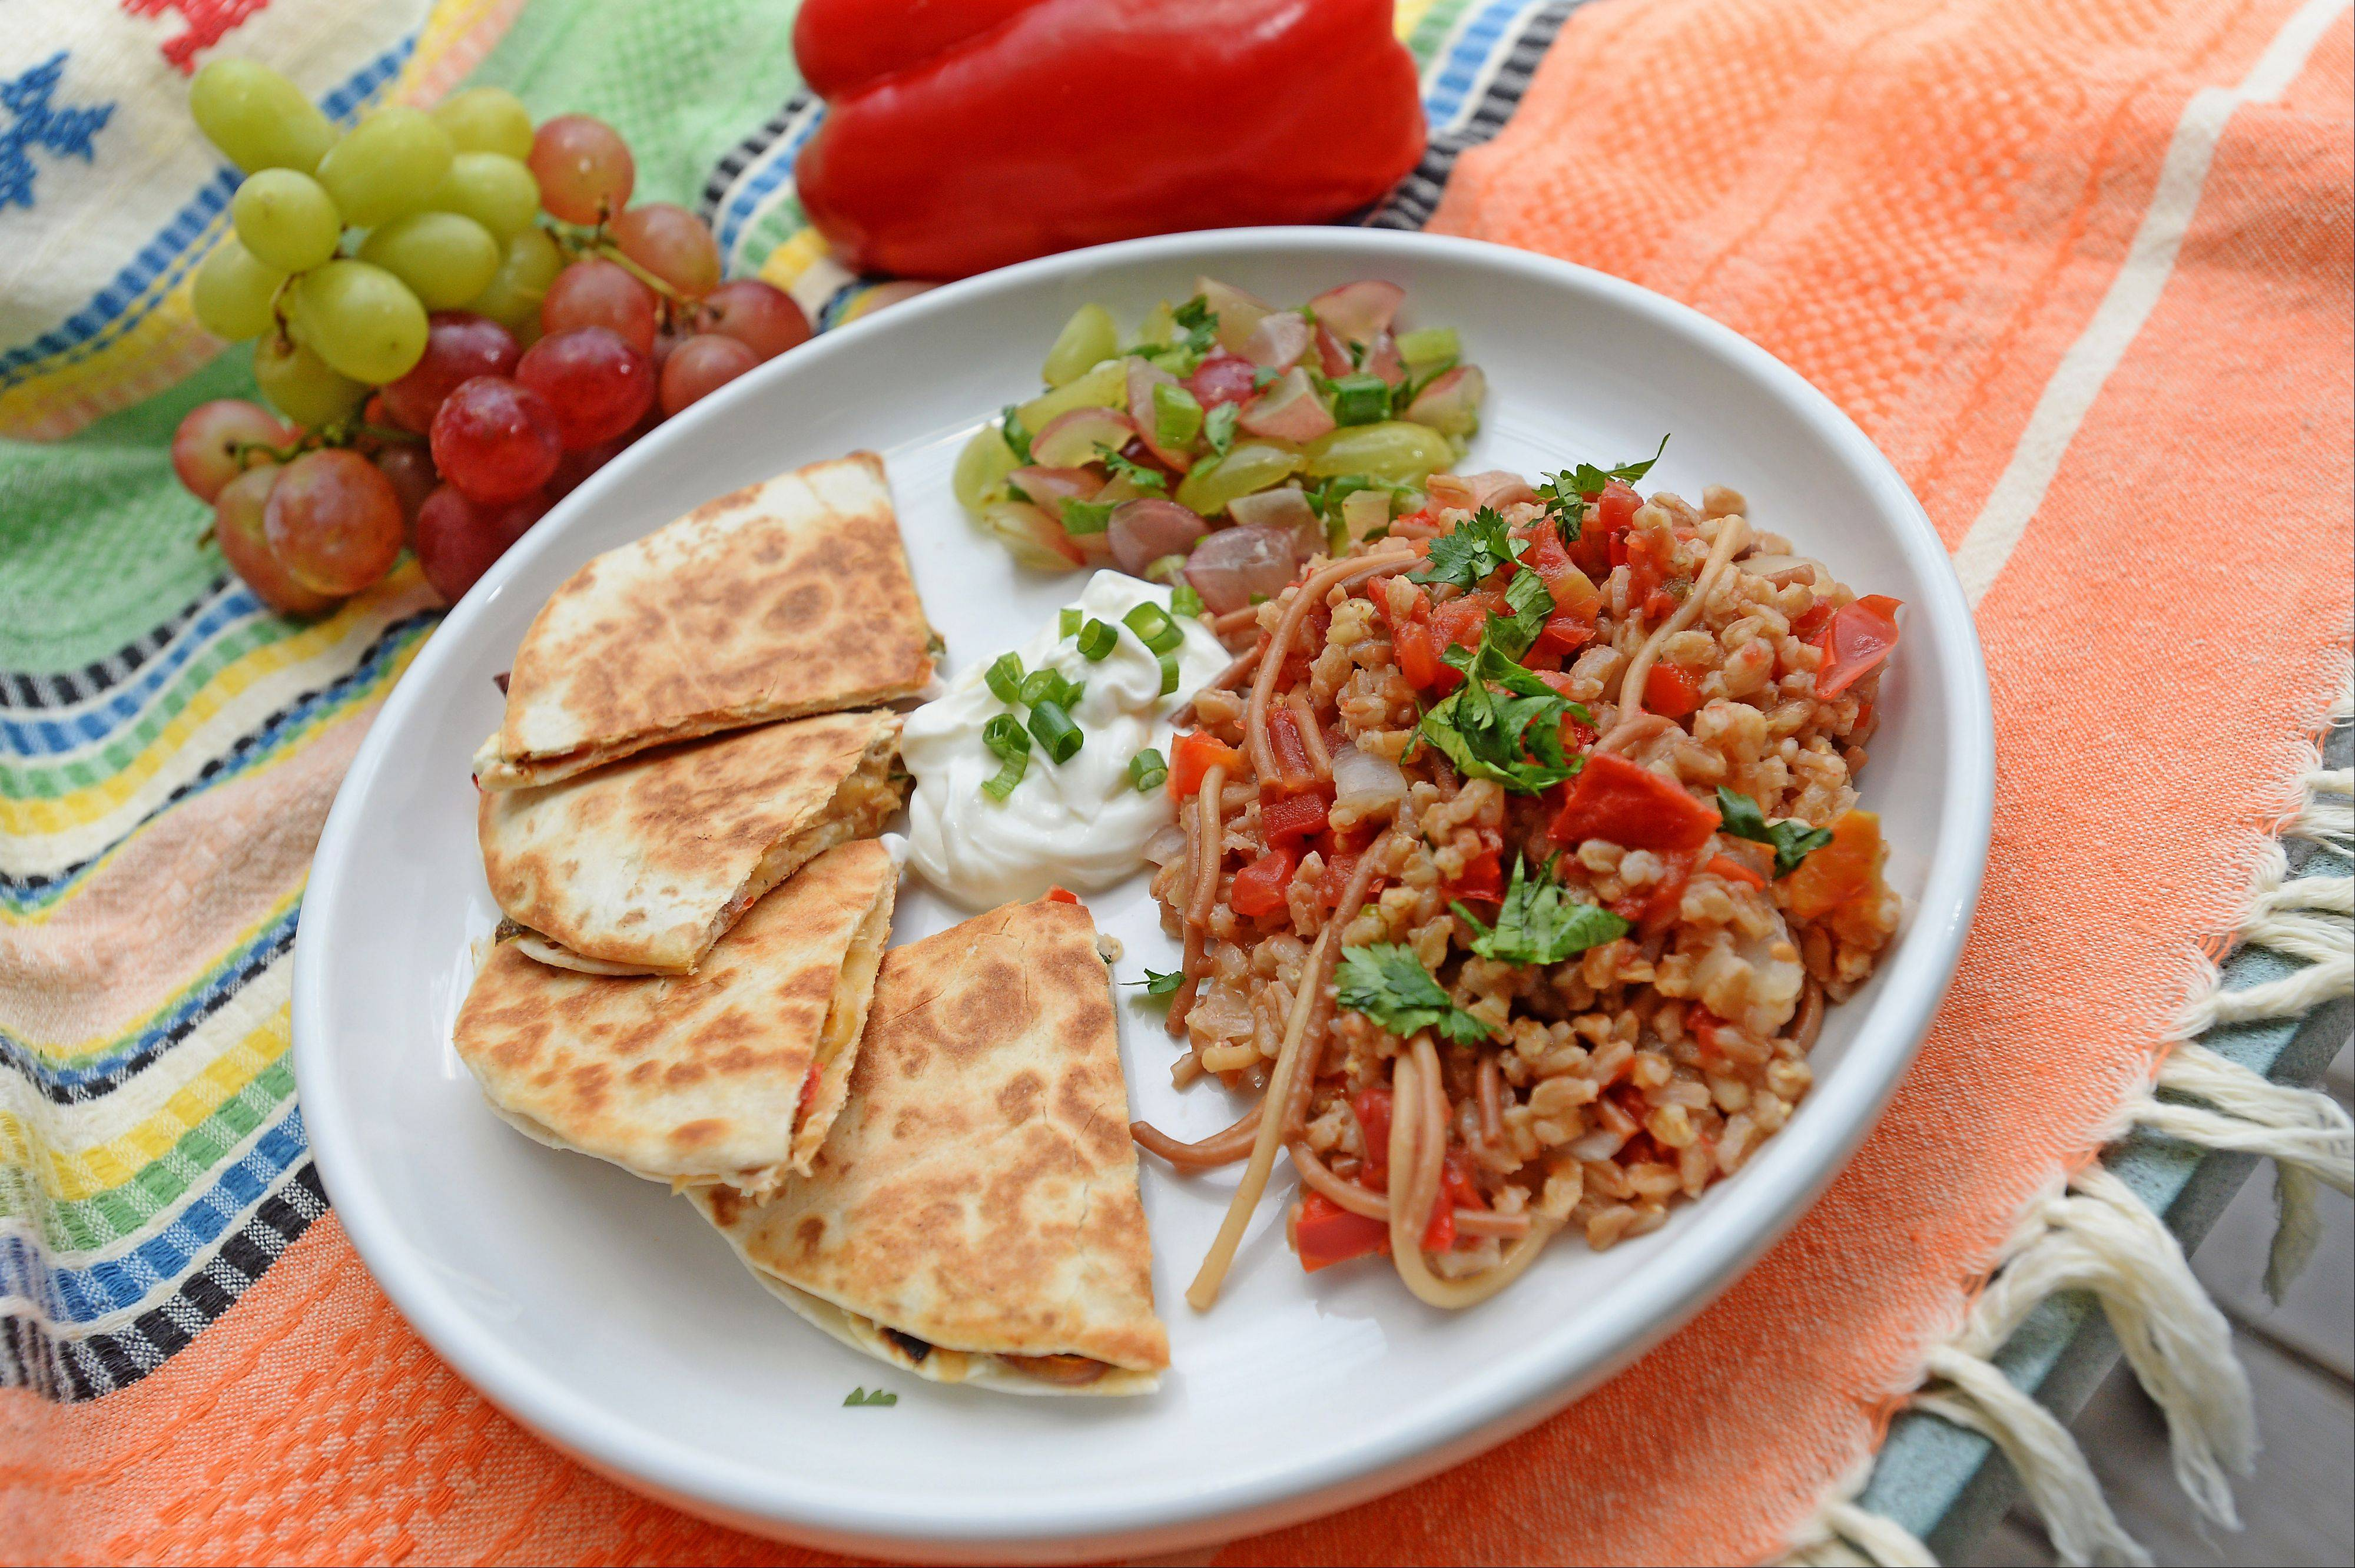 2011 Cook of the Year Penny Kazmier wasn�t afraid to put her competitive cooking skills to the test. How do you think her Salmon Quesadillas with Grape Salsa and Spanish Farro stack up against the 2013 contestants?